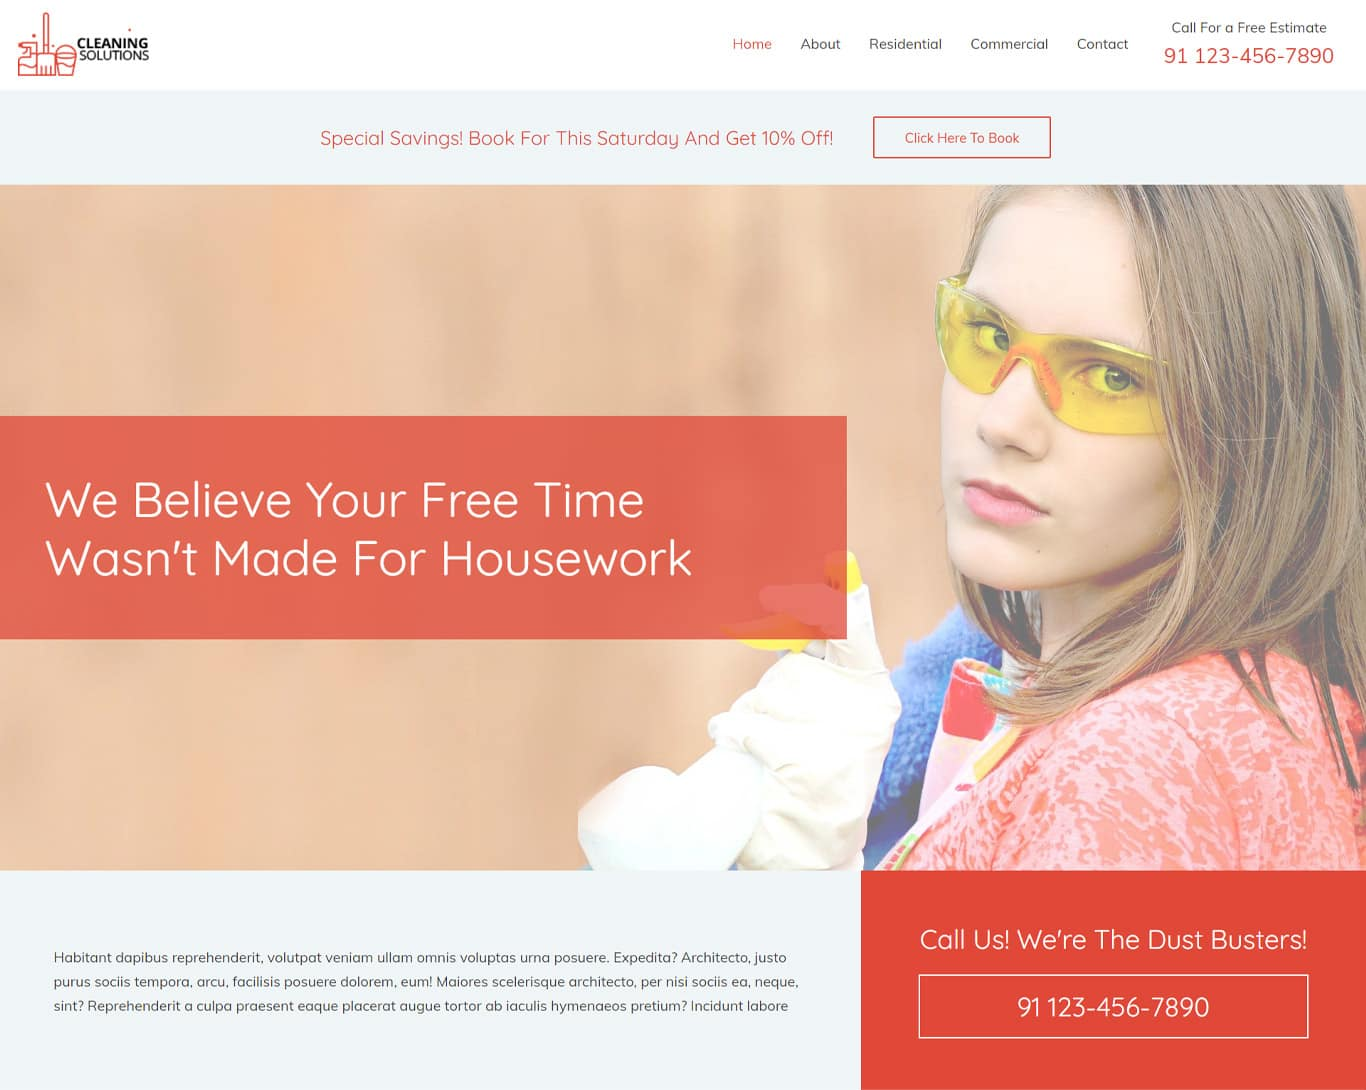 Cleaning services brizy template